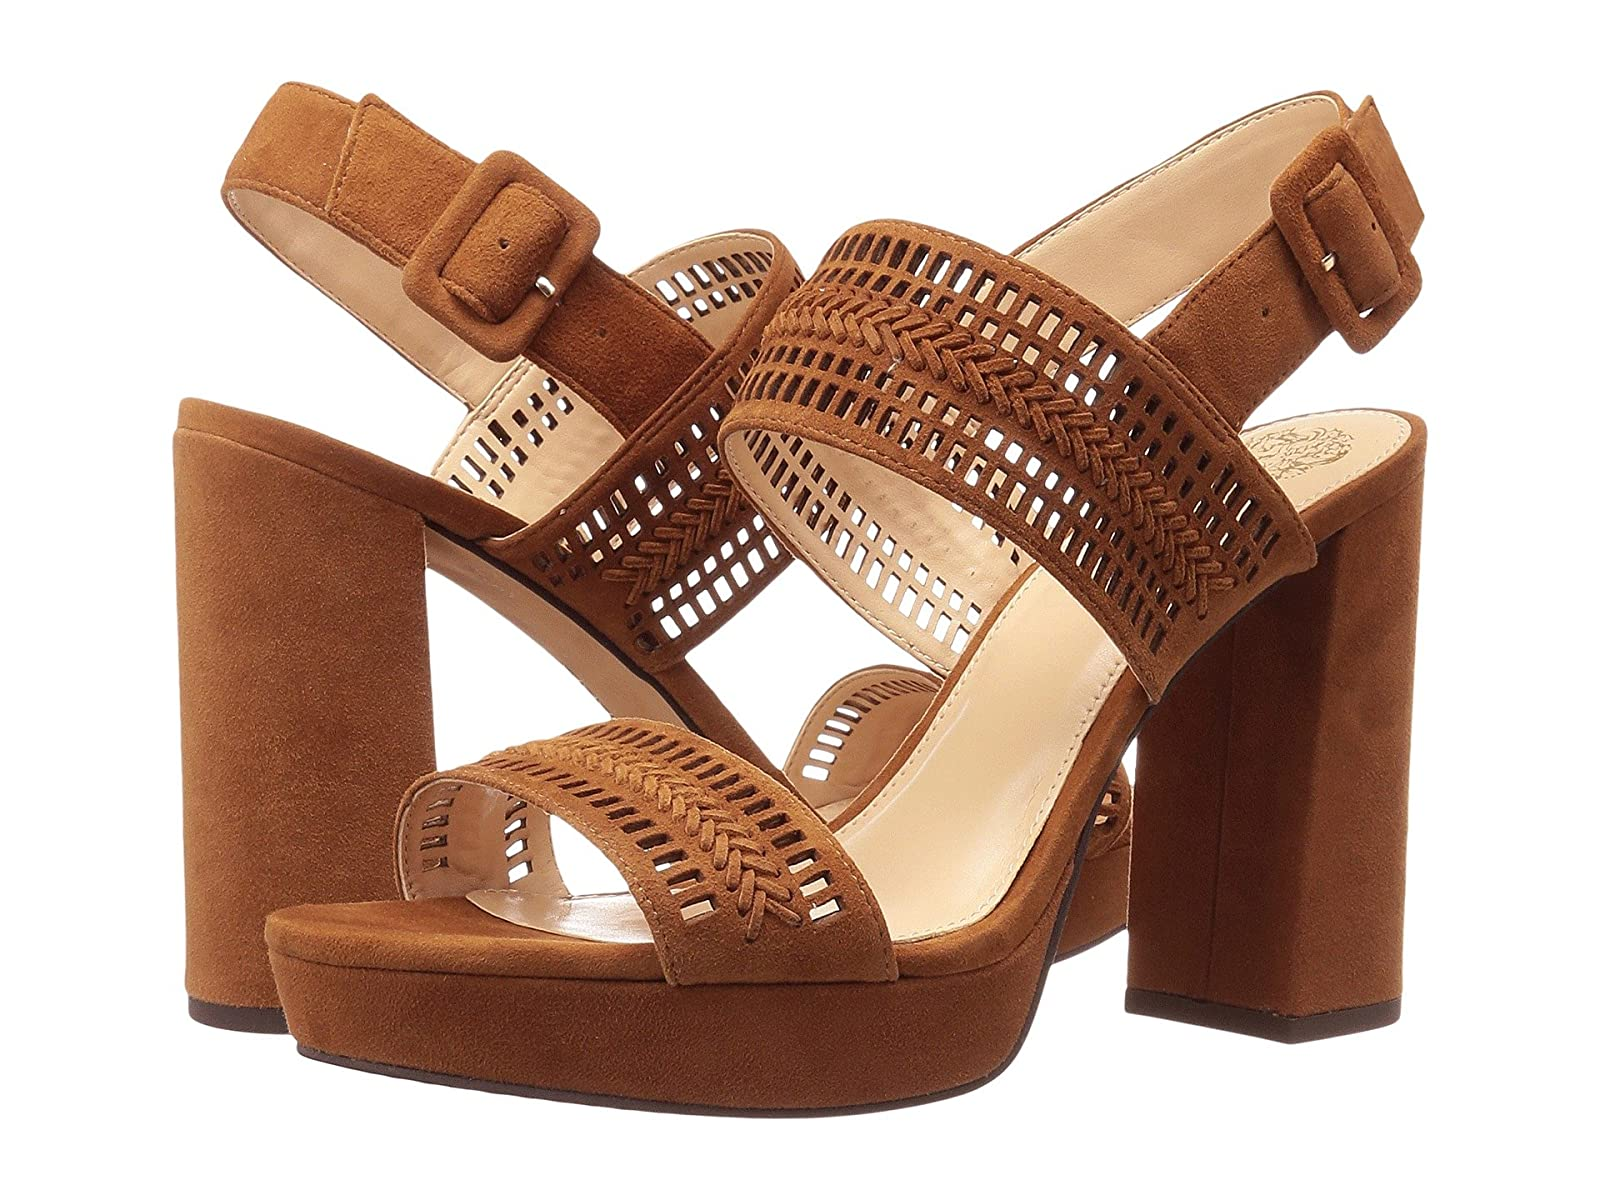 Vince Camuto JazelleCheap and distinctive eye-catching shoes